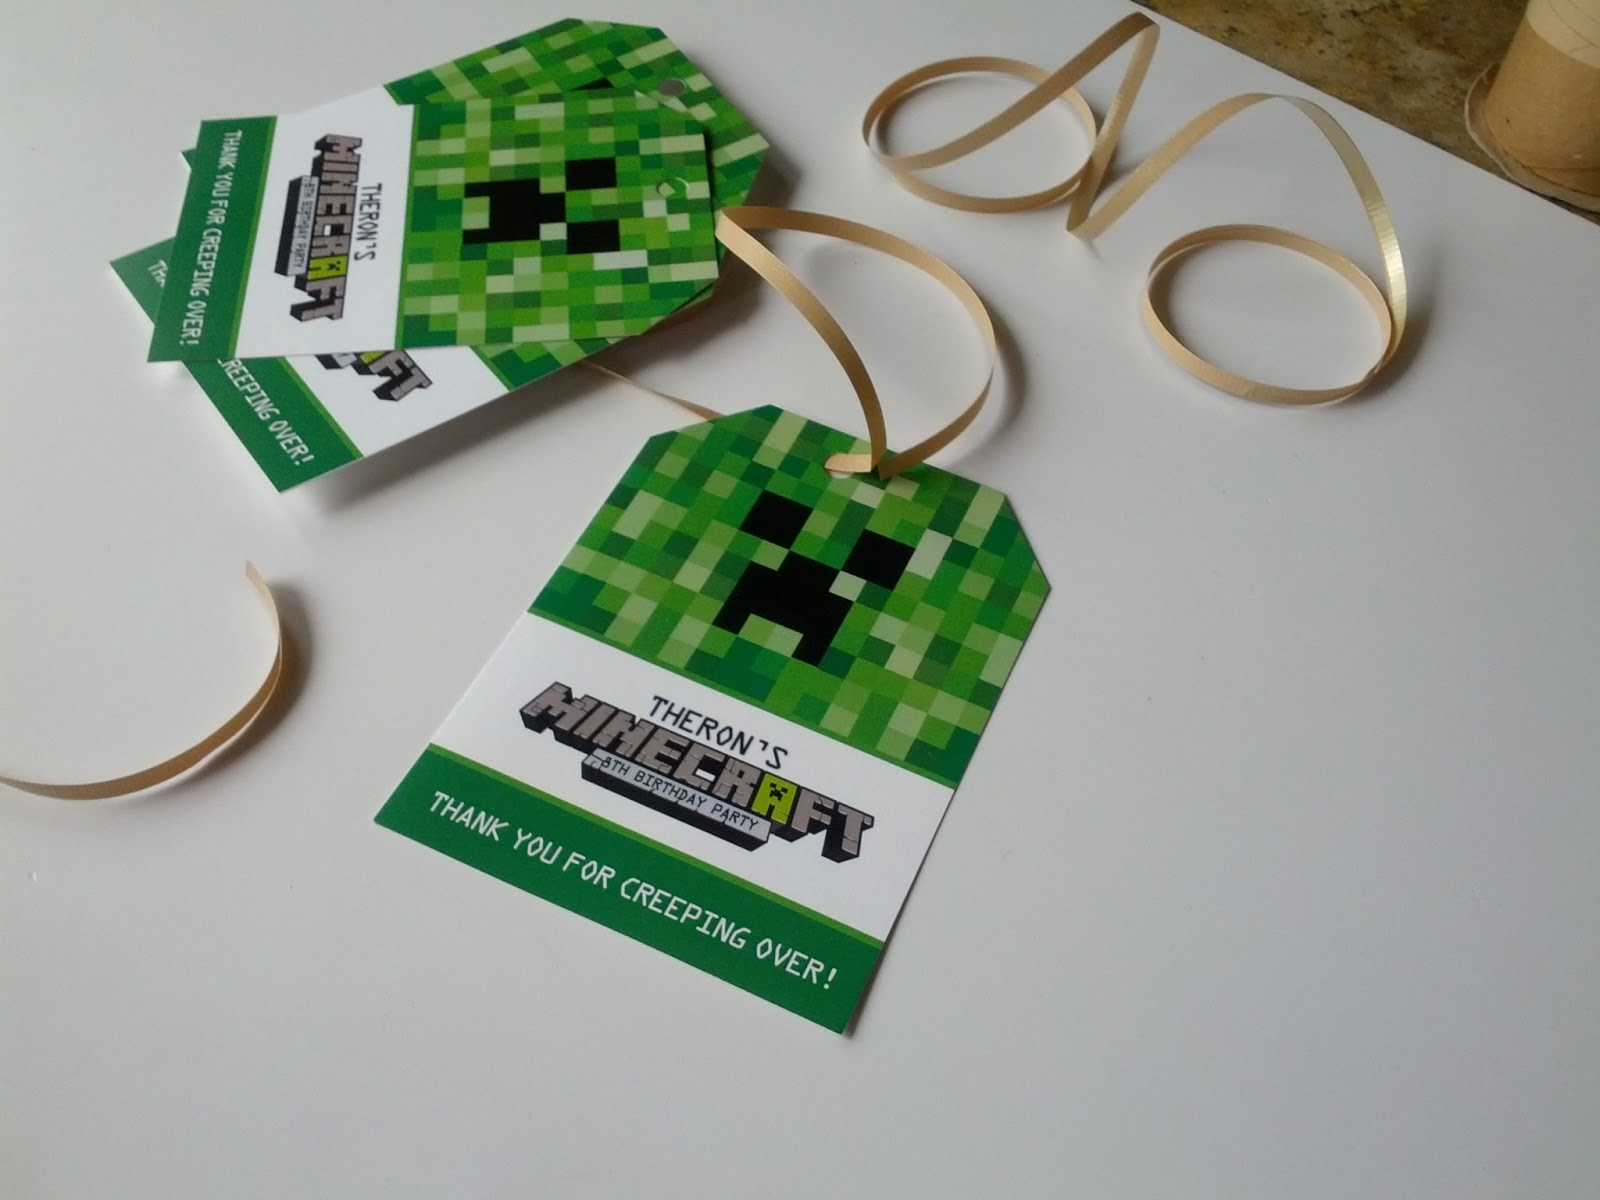 Minecraft birthday party ideas and invitations i took green cupcakes designed cupcake wrappers and cupcake toppers green bags with custom designed tags custom notepads green pencils with happy 8th solutioingenieria Images